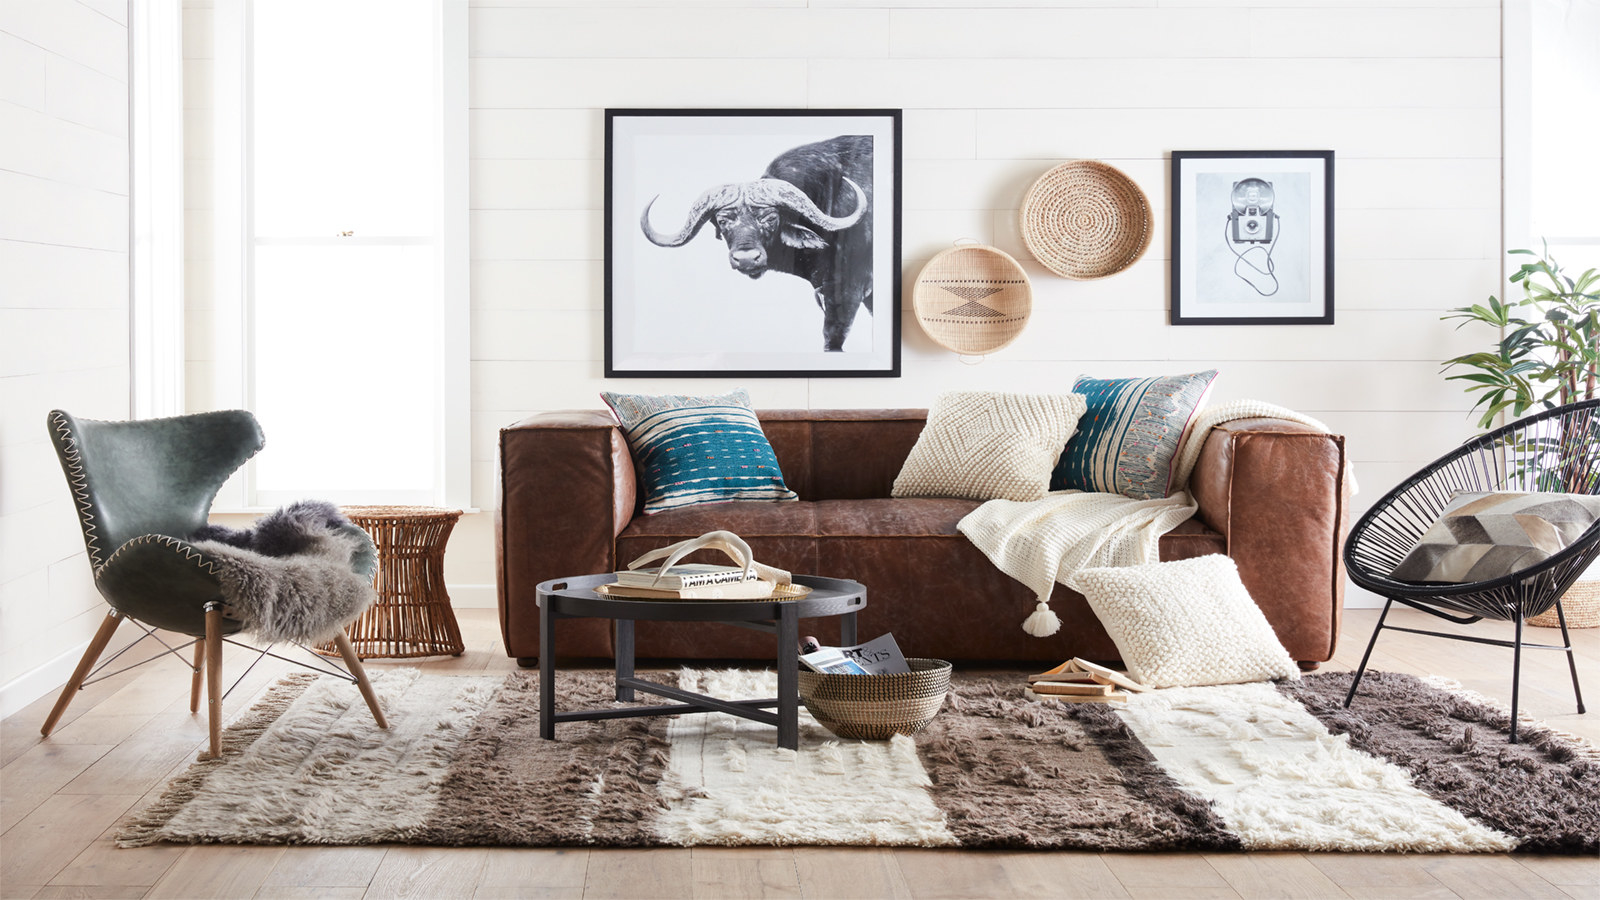 furniture like west elm. Walmart Seems To Have Gotten Inspiration From A Competitor. Its Redesigned Home Site Looks LOT Like West Elm Ad. Furniture